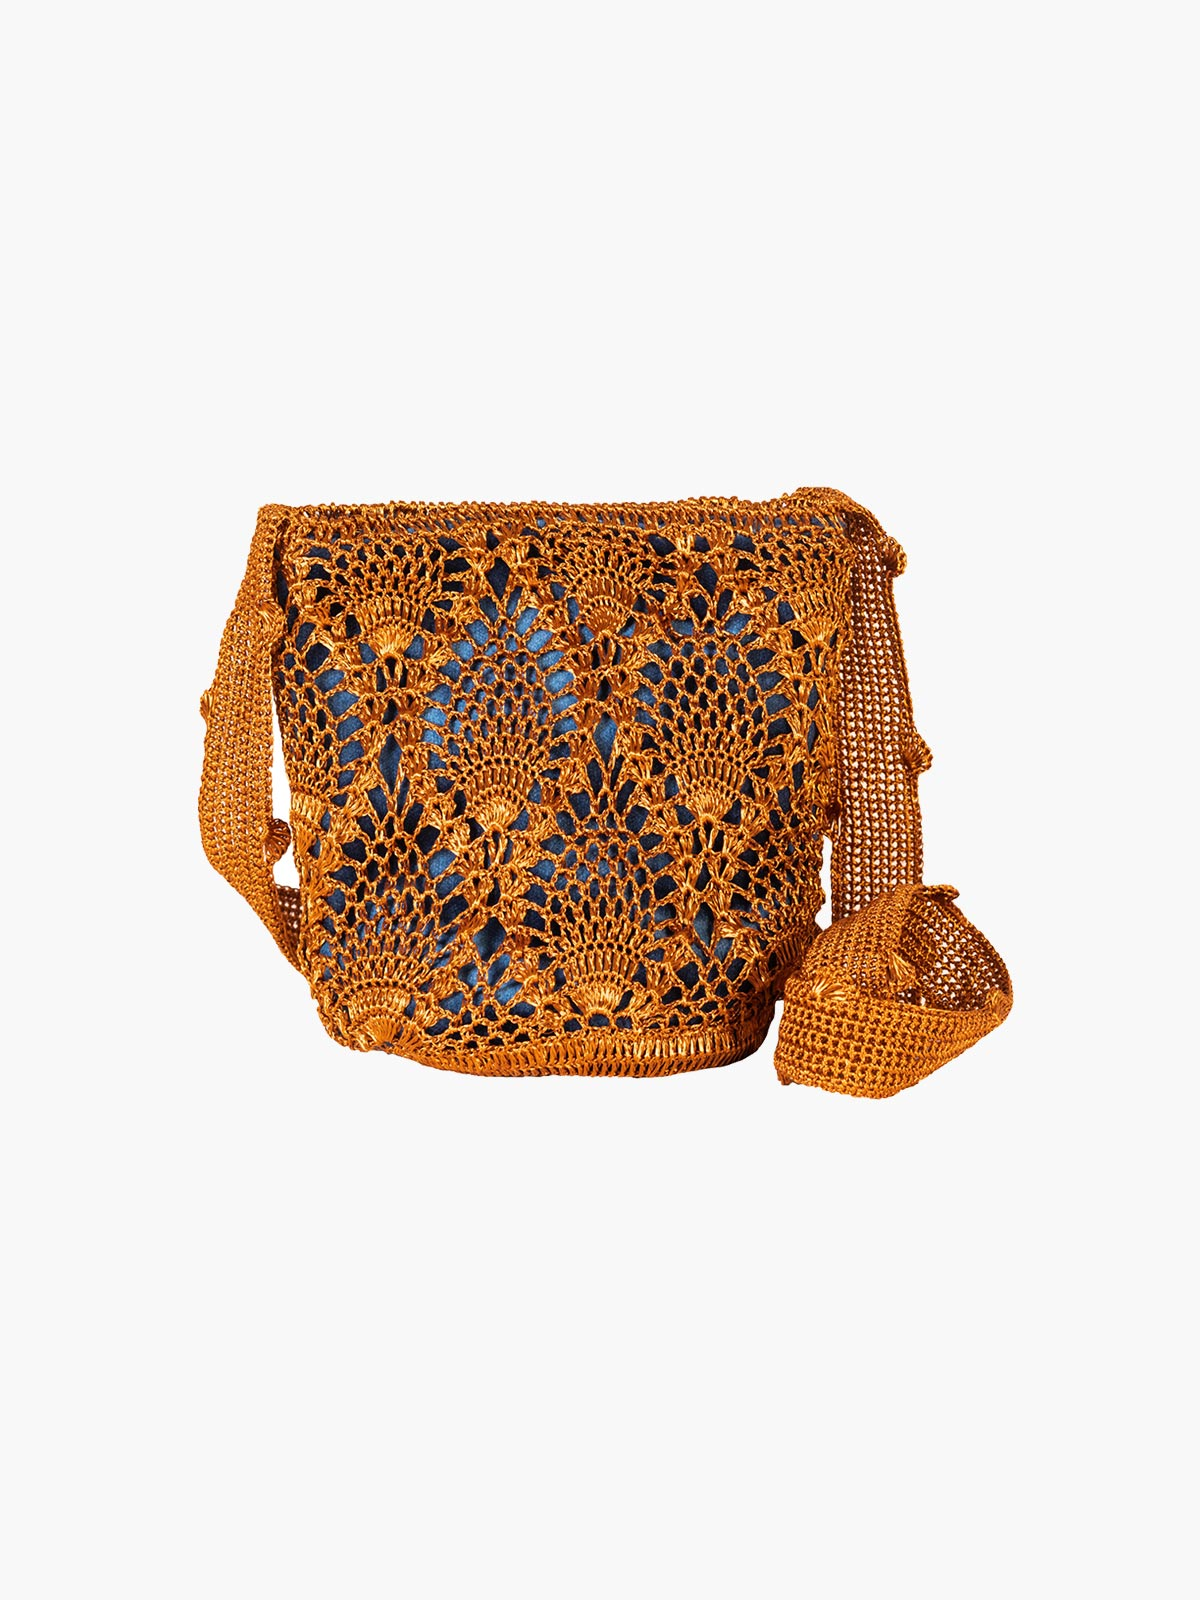 Pineapple Weave Mochila | Copper & Blue